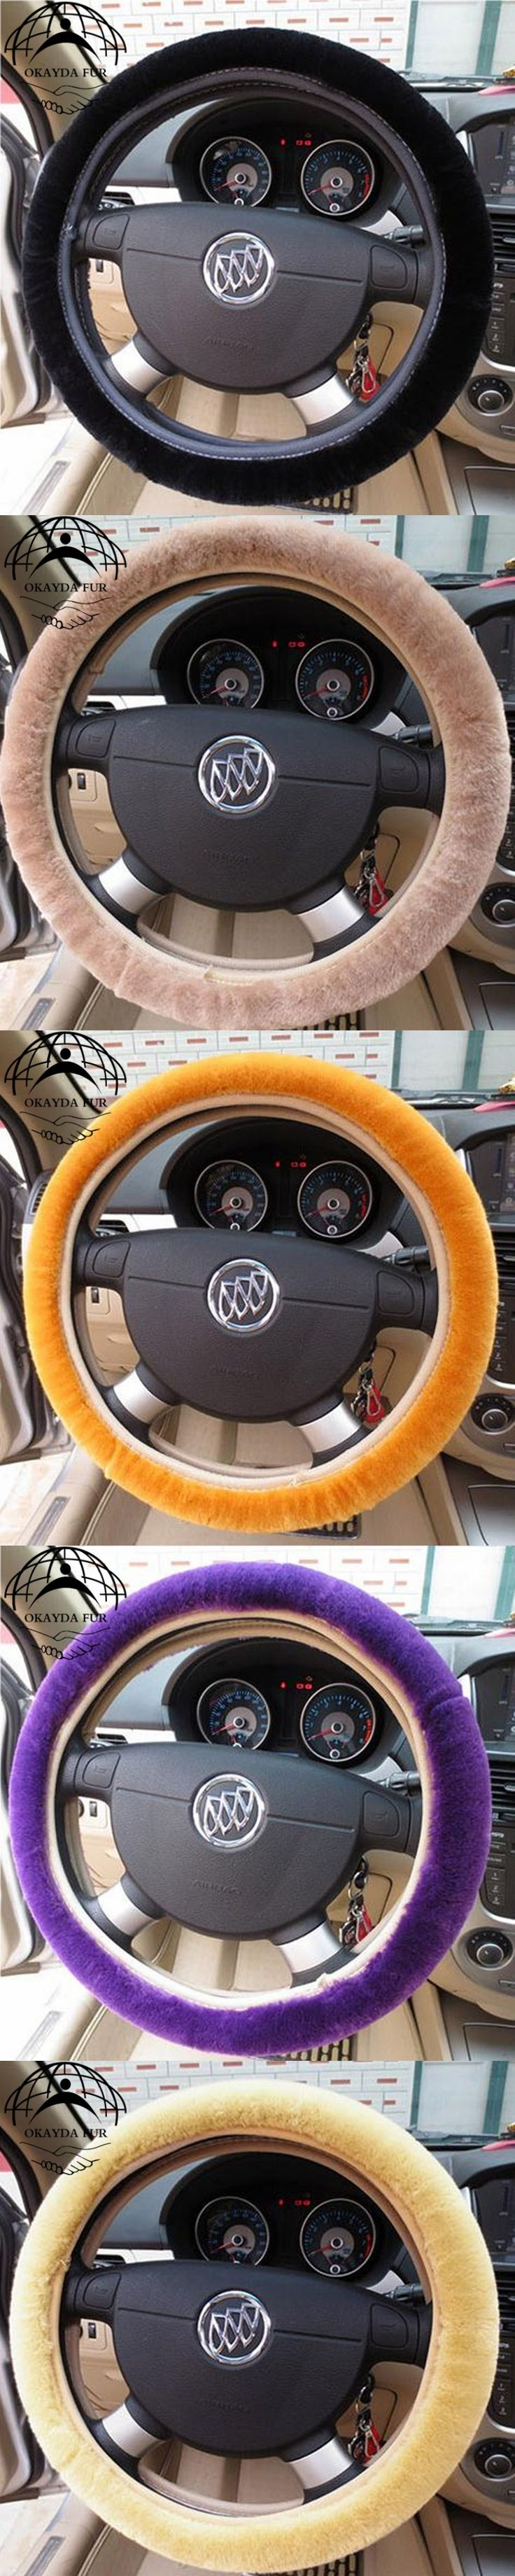 OKAYDA faux fur car steering wheel cover warm and anti-slip car steering wheel cover Fit Most Car Styling shipping free